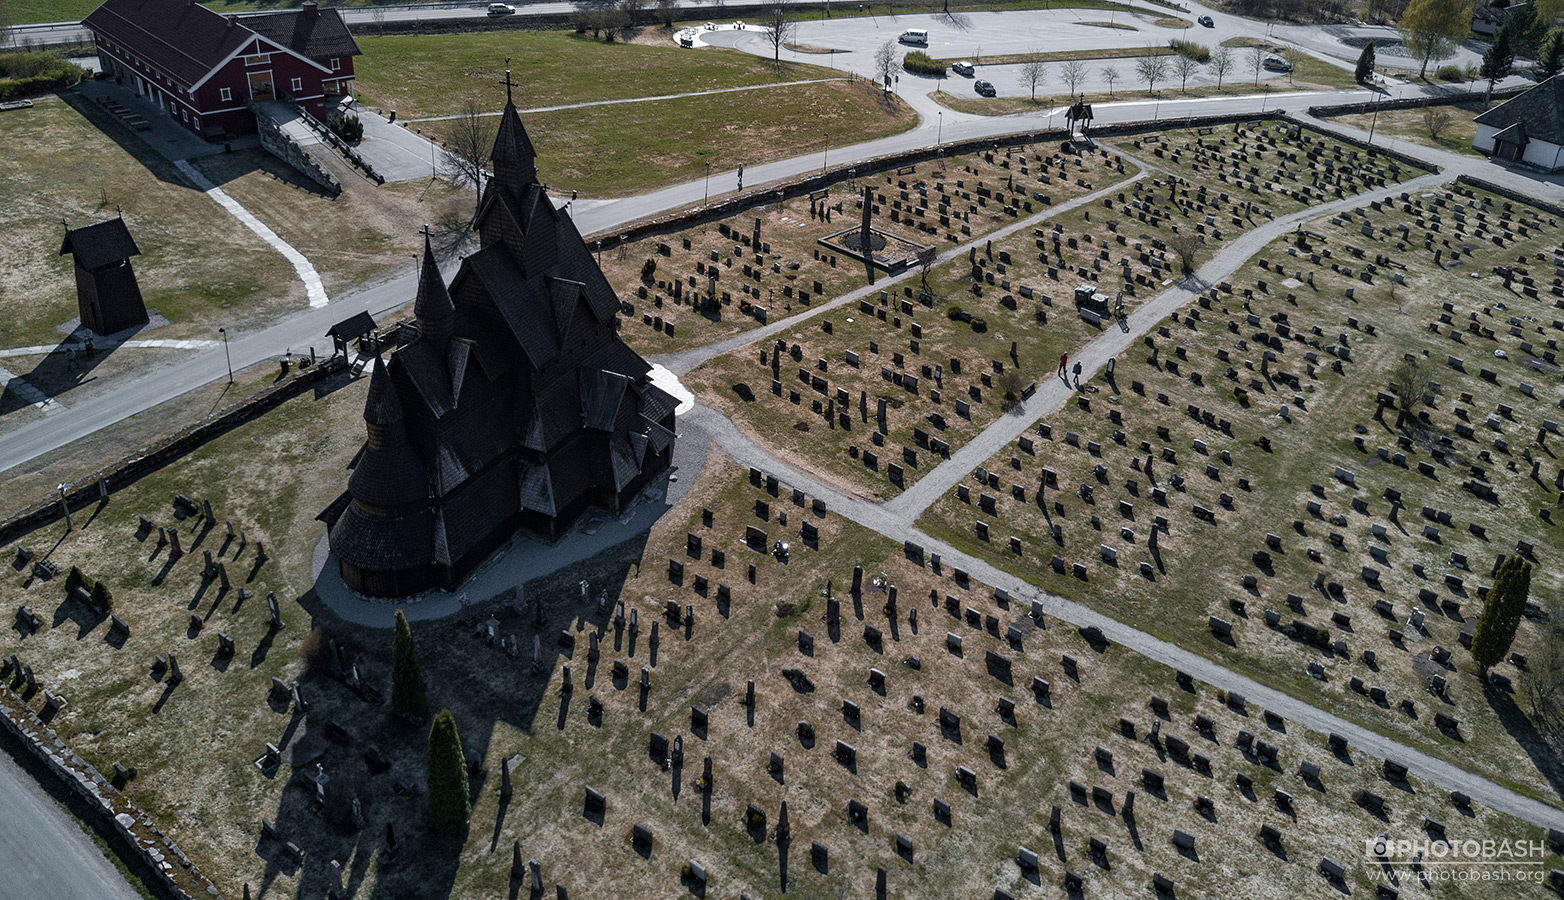 Viking-Architecture-Drone-Aerial-View.jpg